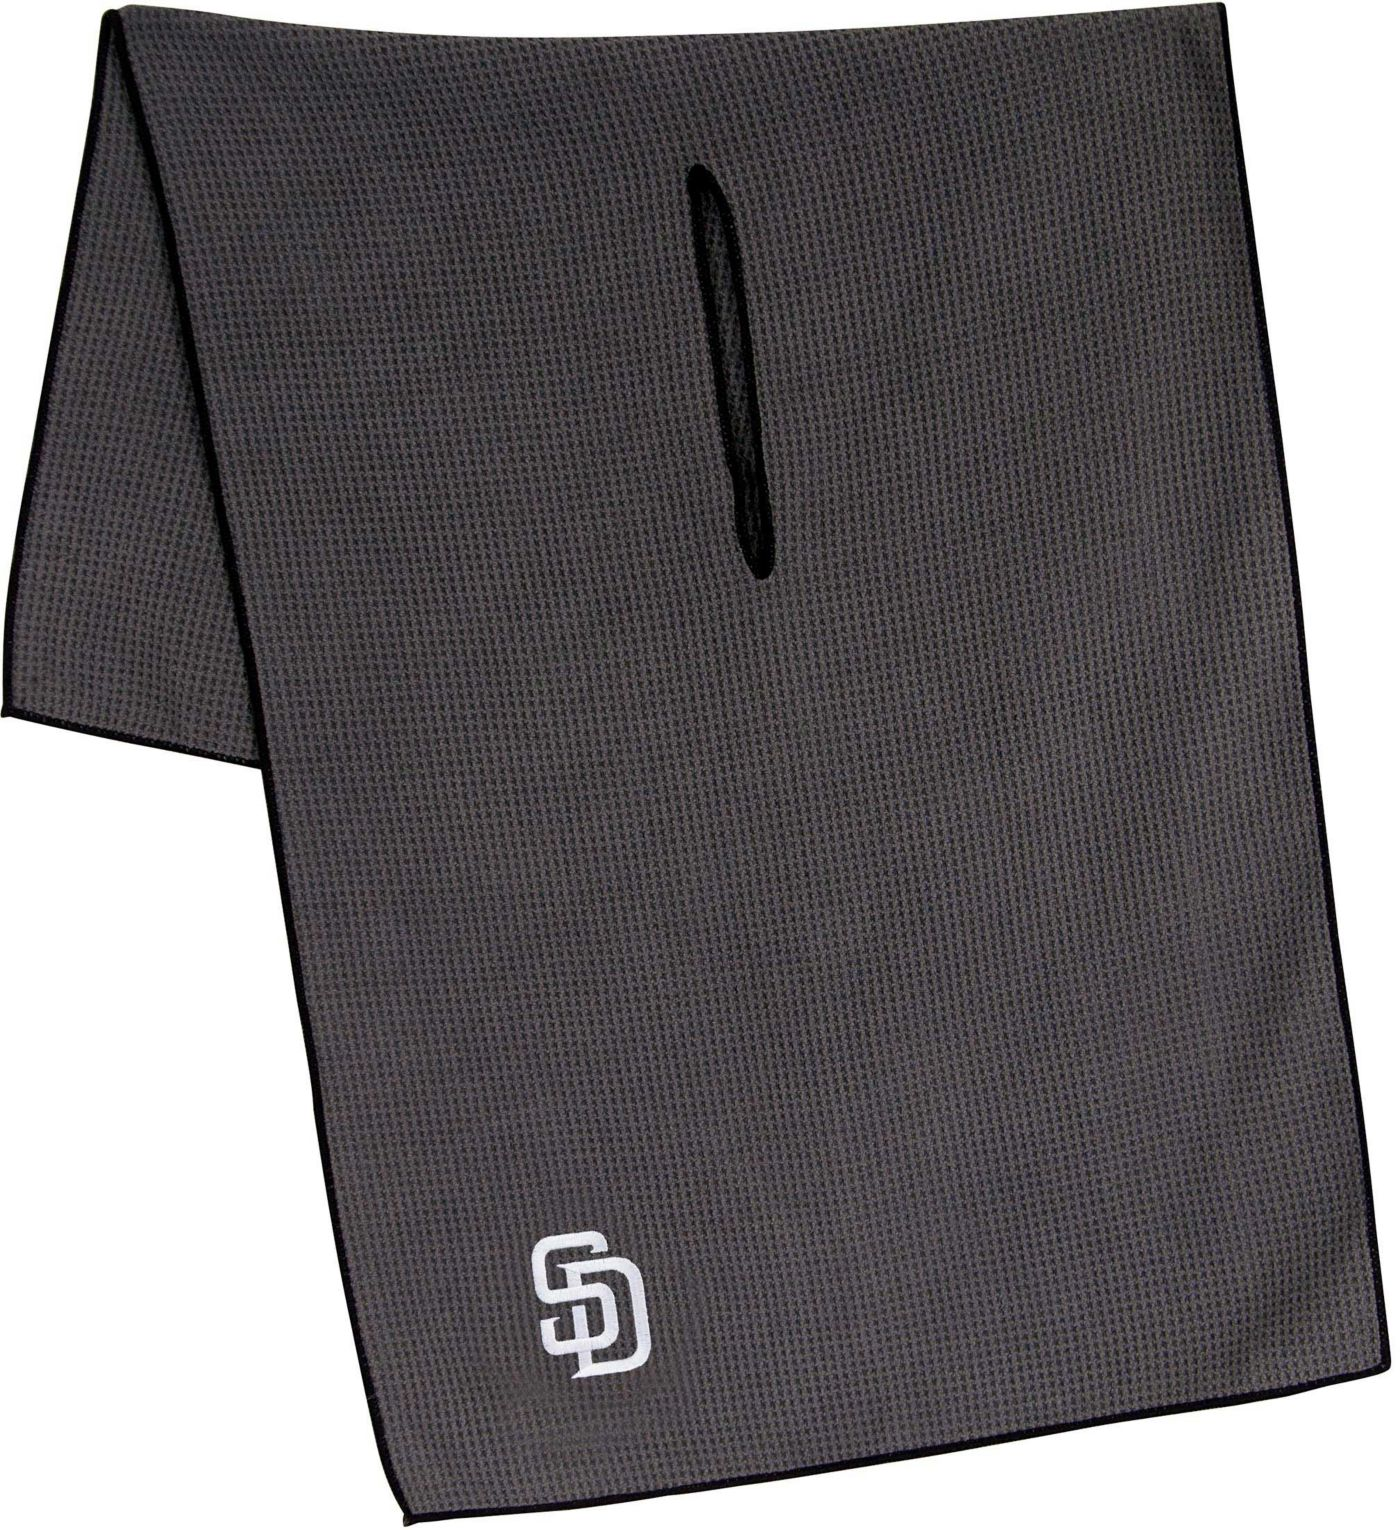 "Team Effort San Diego Padres 19"" x 41"" Microfiber Golf Towel"